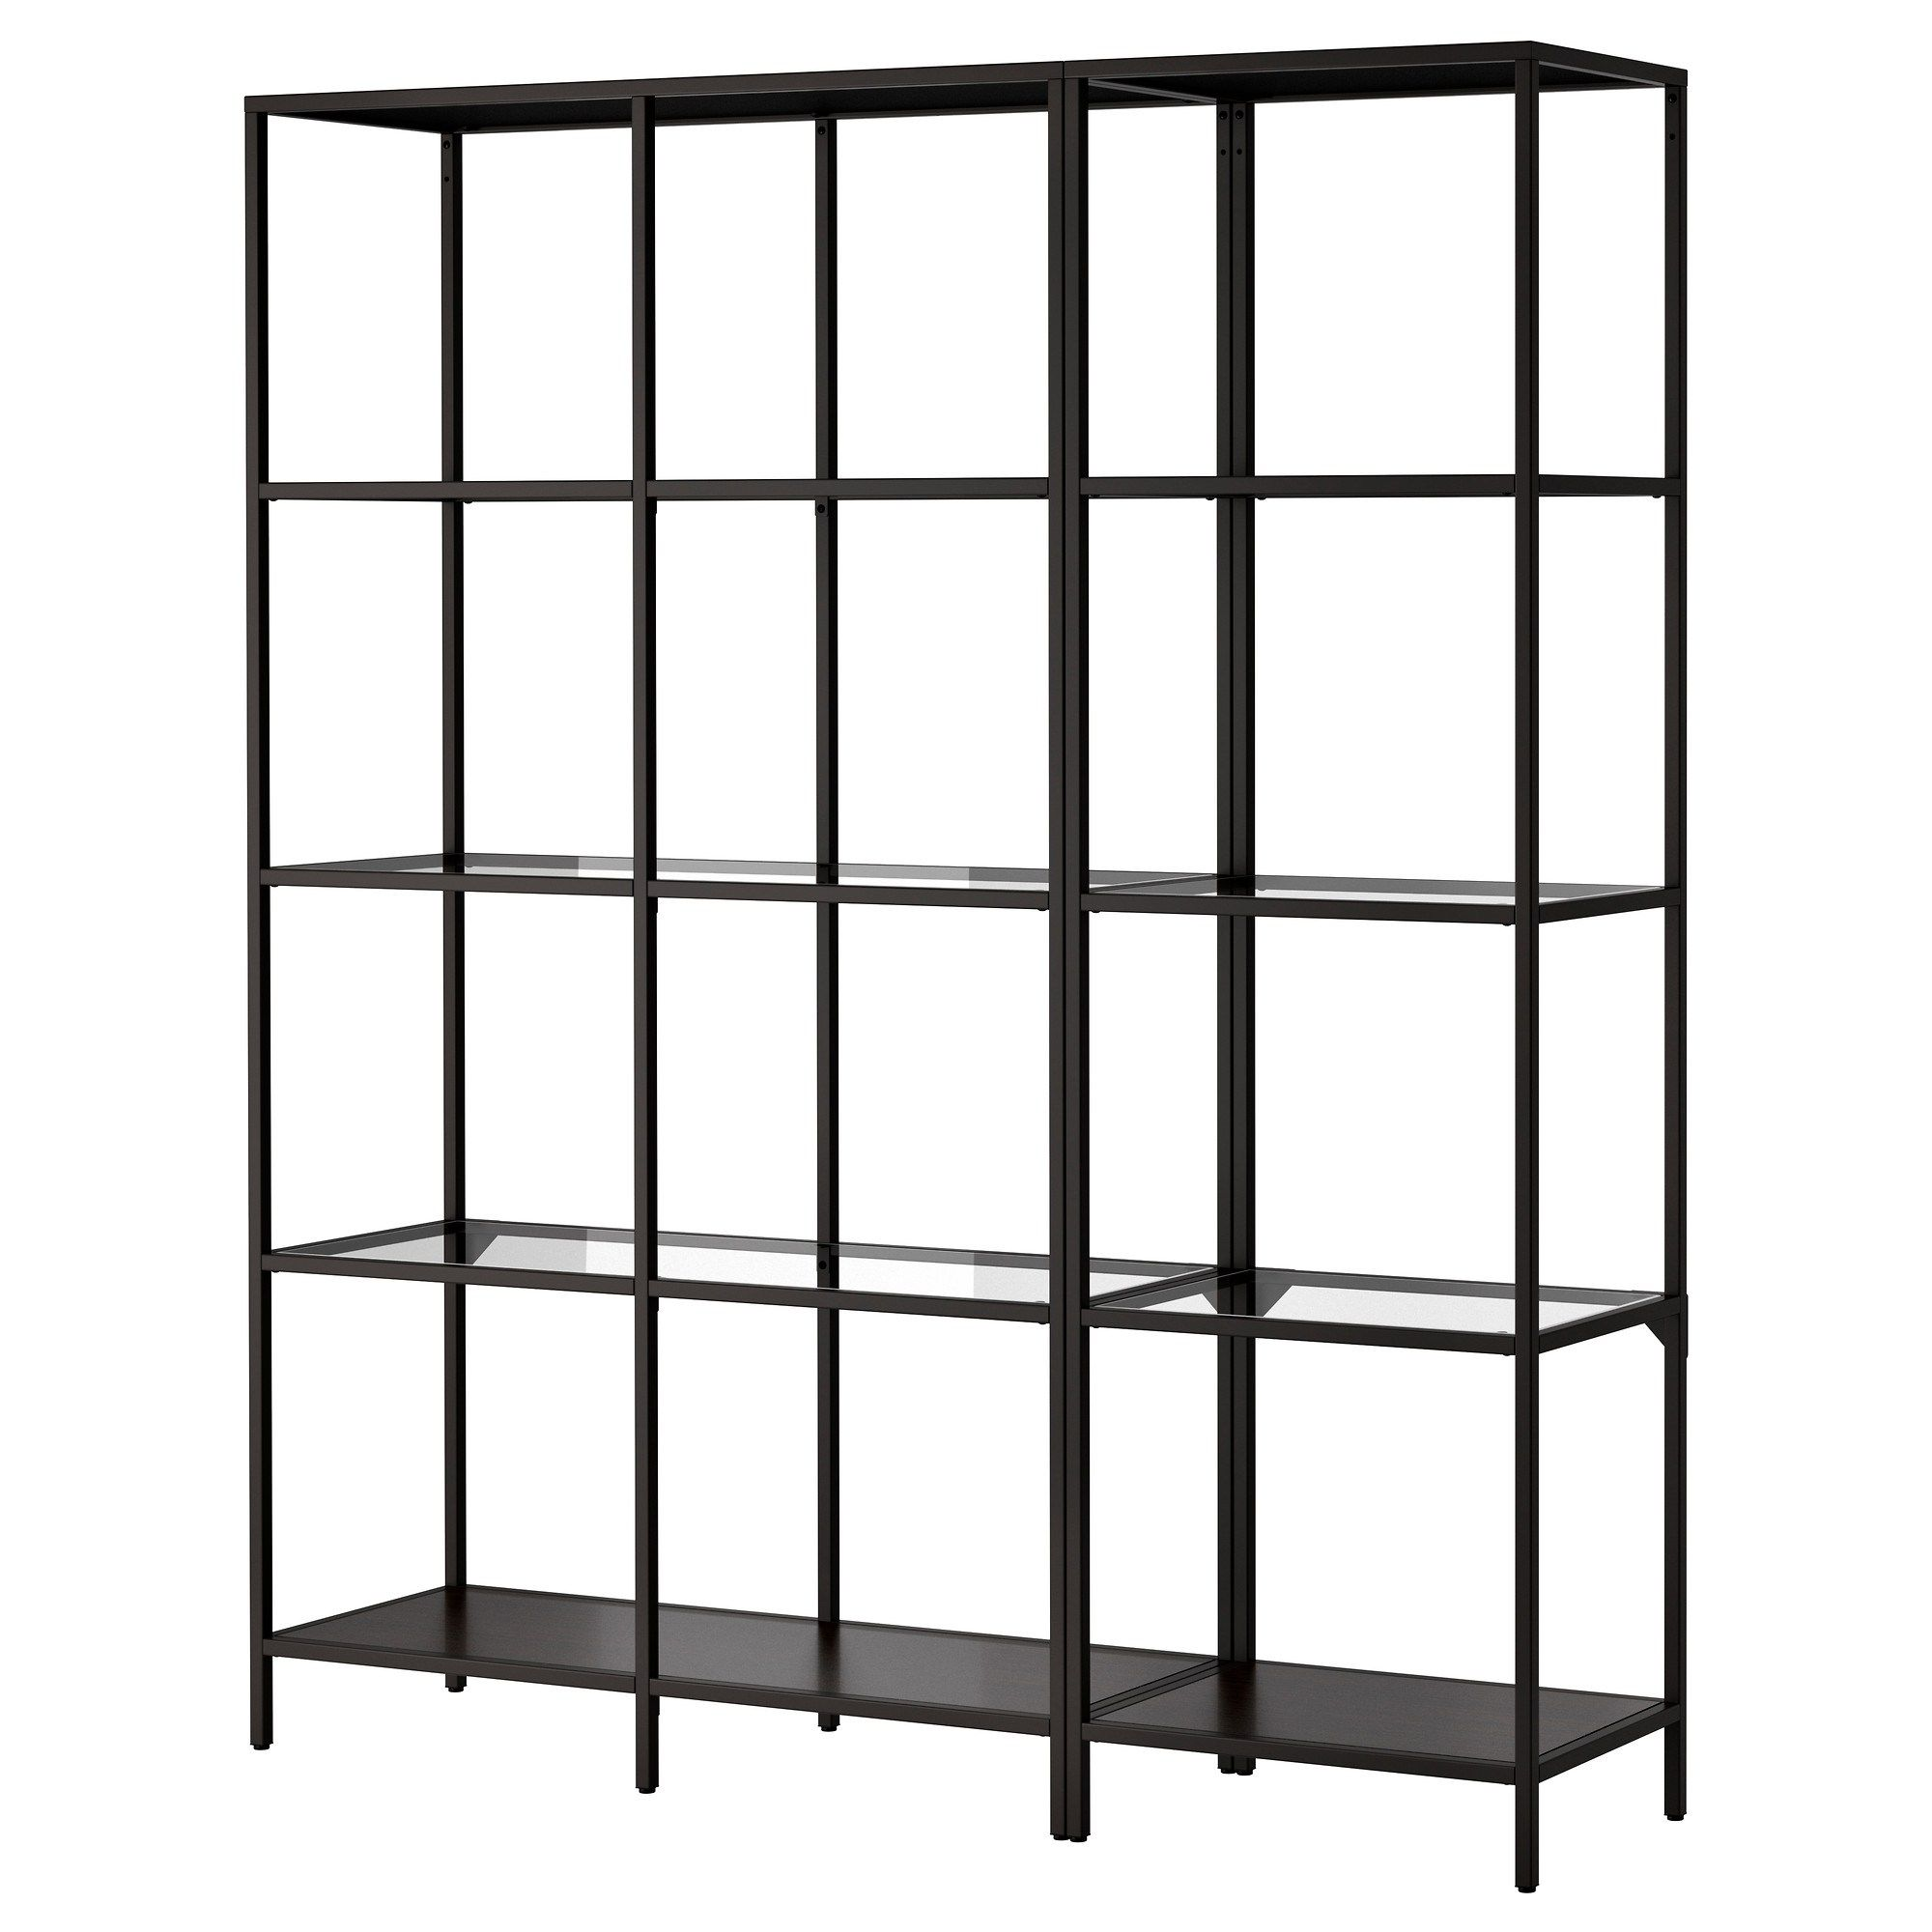 Glasregal Ikea Kreative Offene Regal Bücherregal Ikea Möbel Ikea Shelving